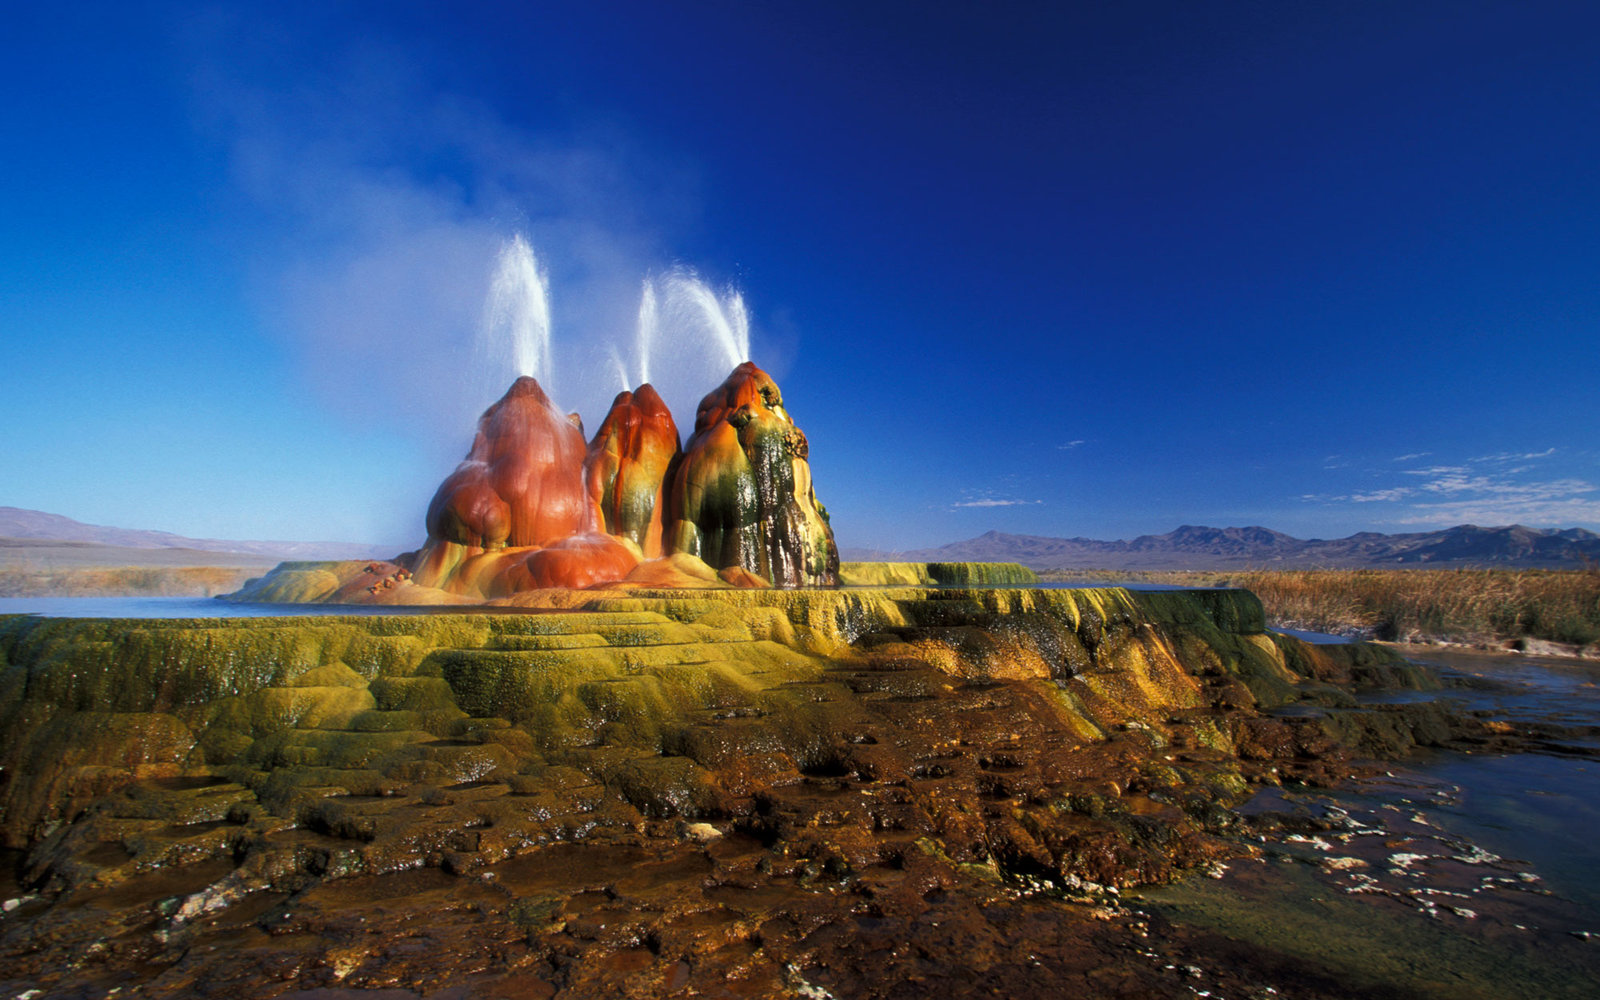 Geyser at Black Rock Desert Nevada